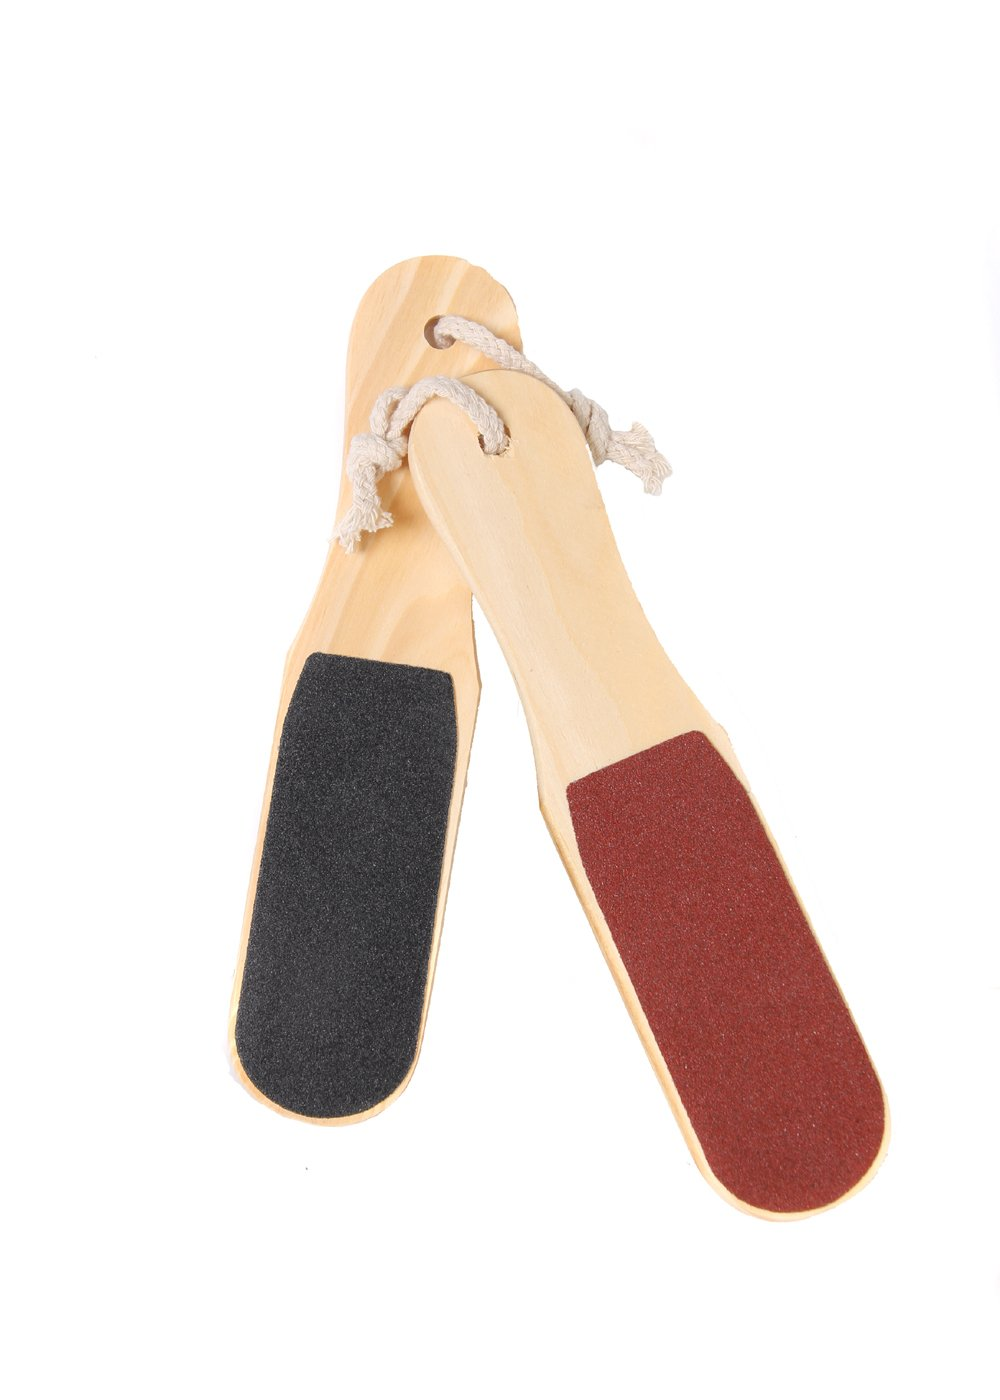 Foot File (2 Pack). Pedicure Hard Skin Remover and Feet Scrubber, 2 Sided Rasp PumiStone